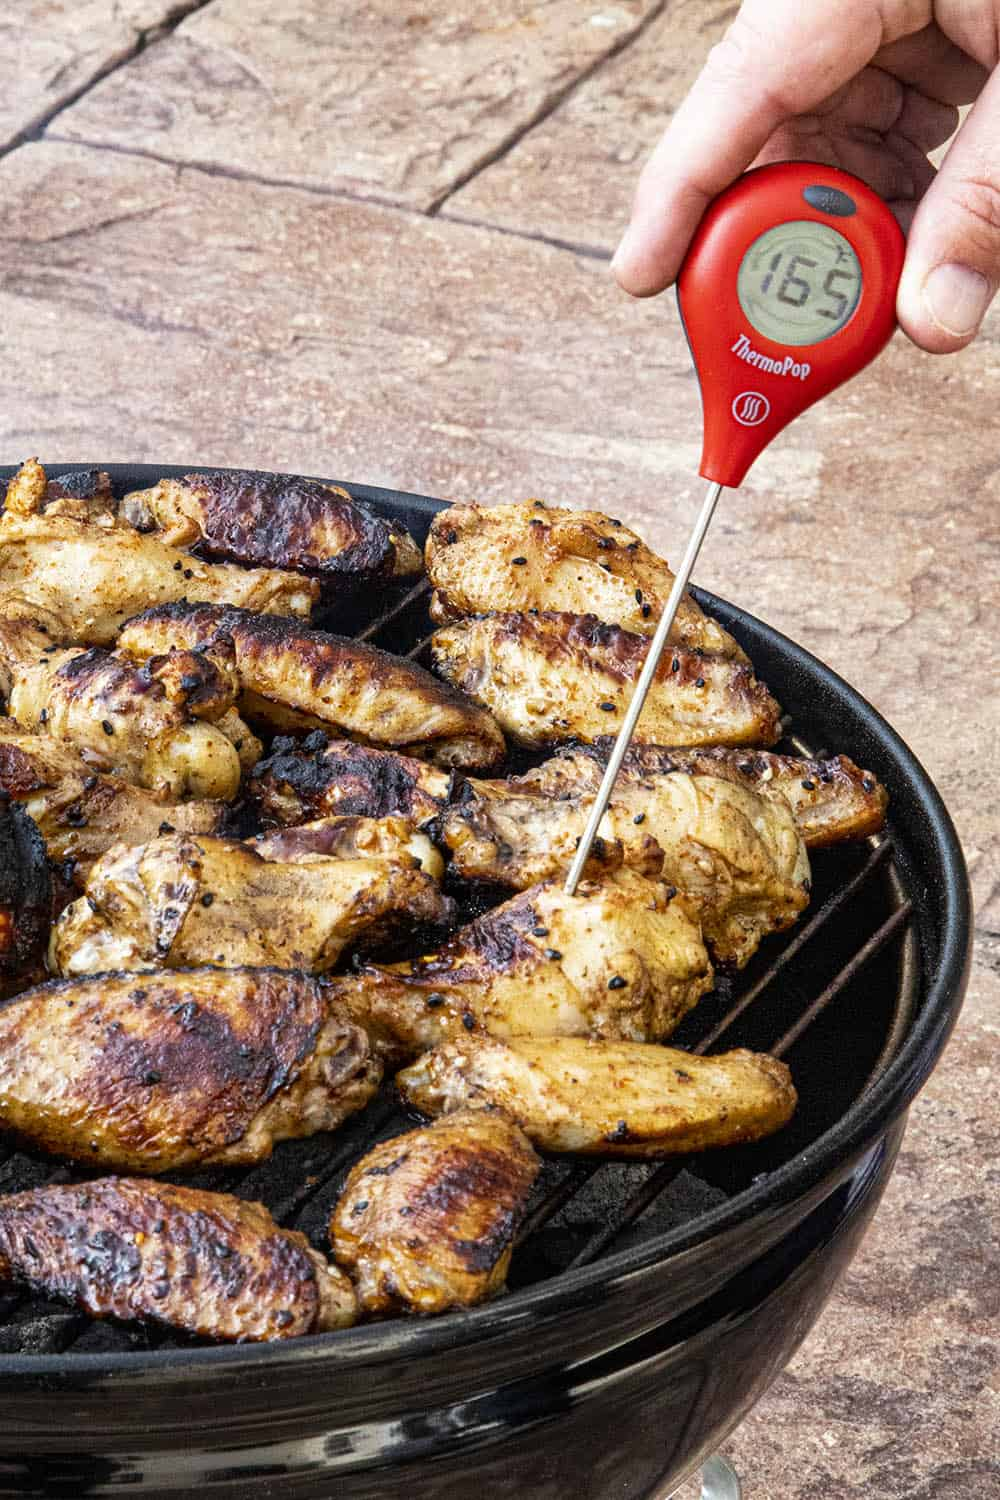 Checking the temperature of my grilled chicken wings